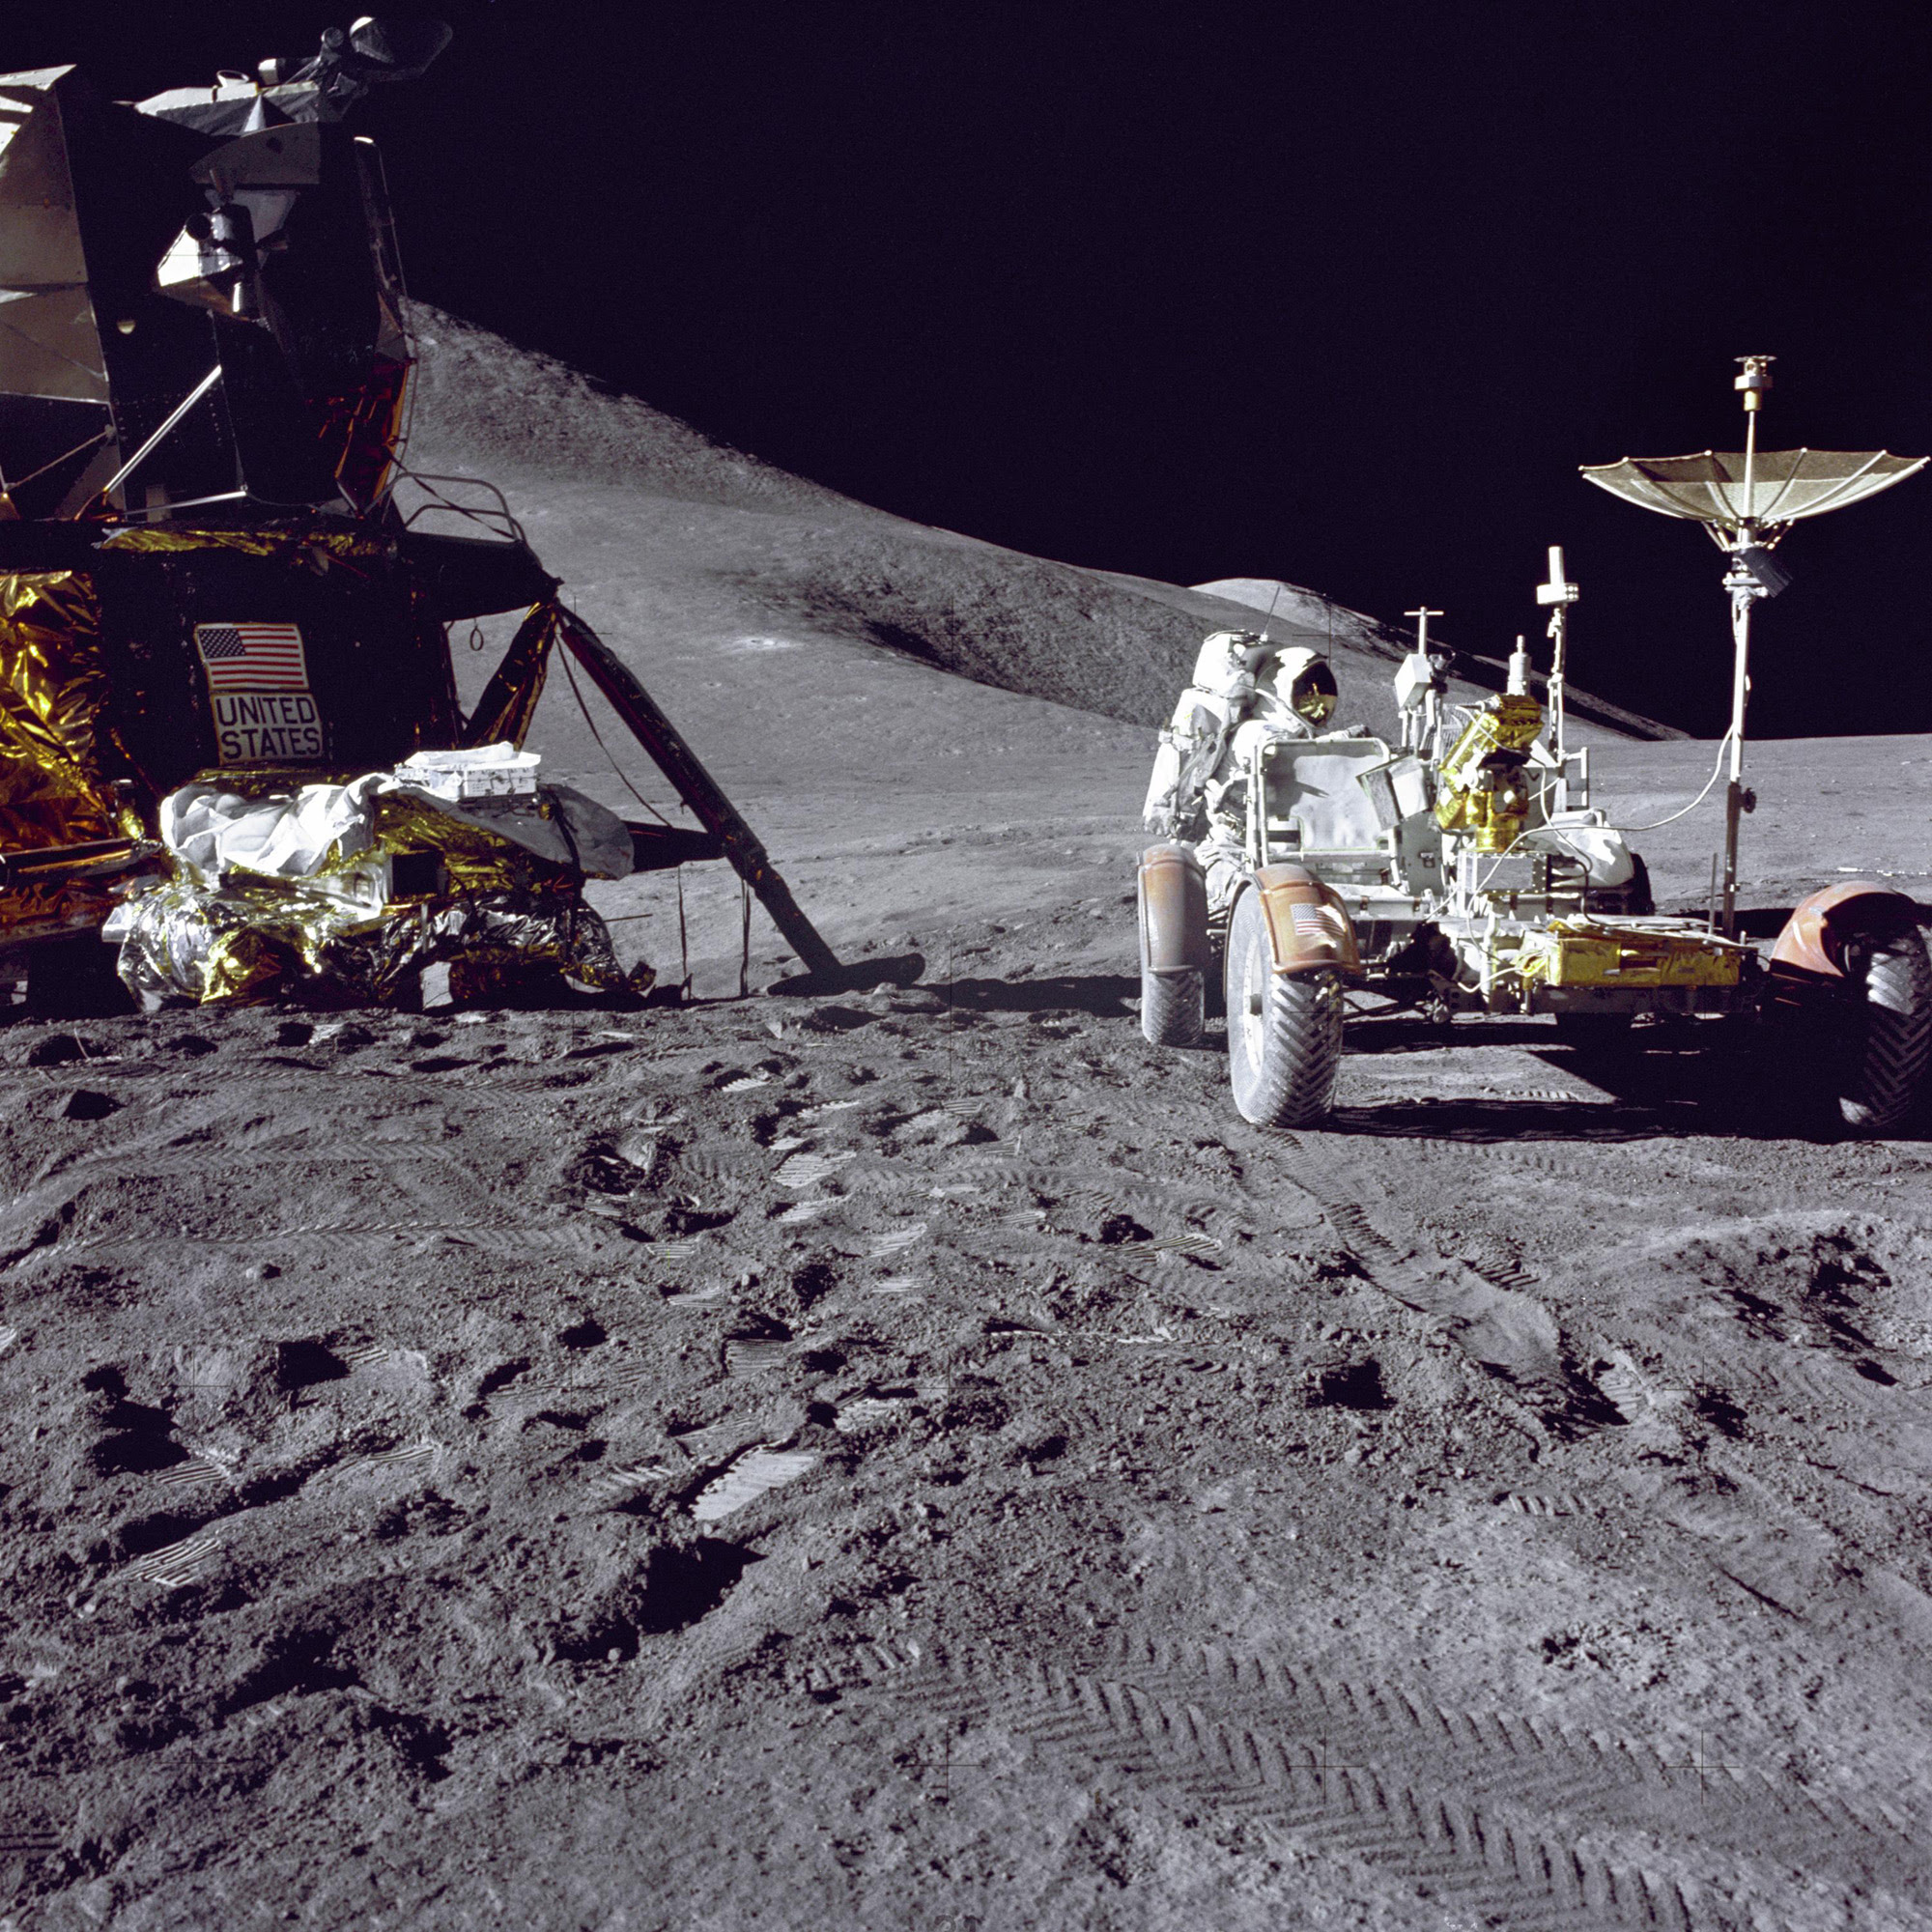 On This Day in Space! July 31, 1971: Apollo astronauts drive on the moon #rwanda #RwOT